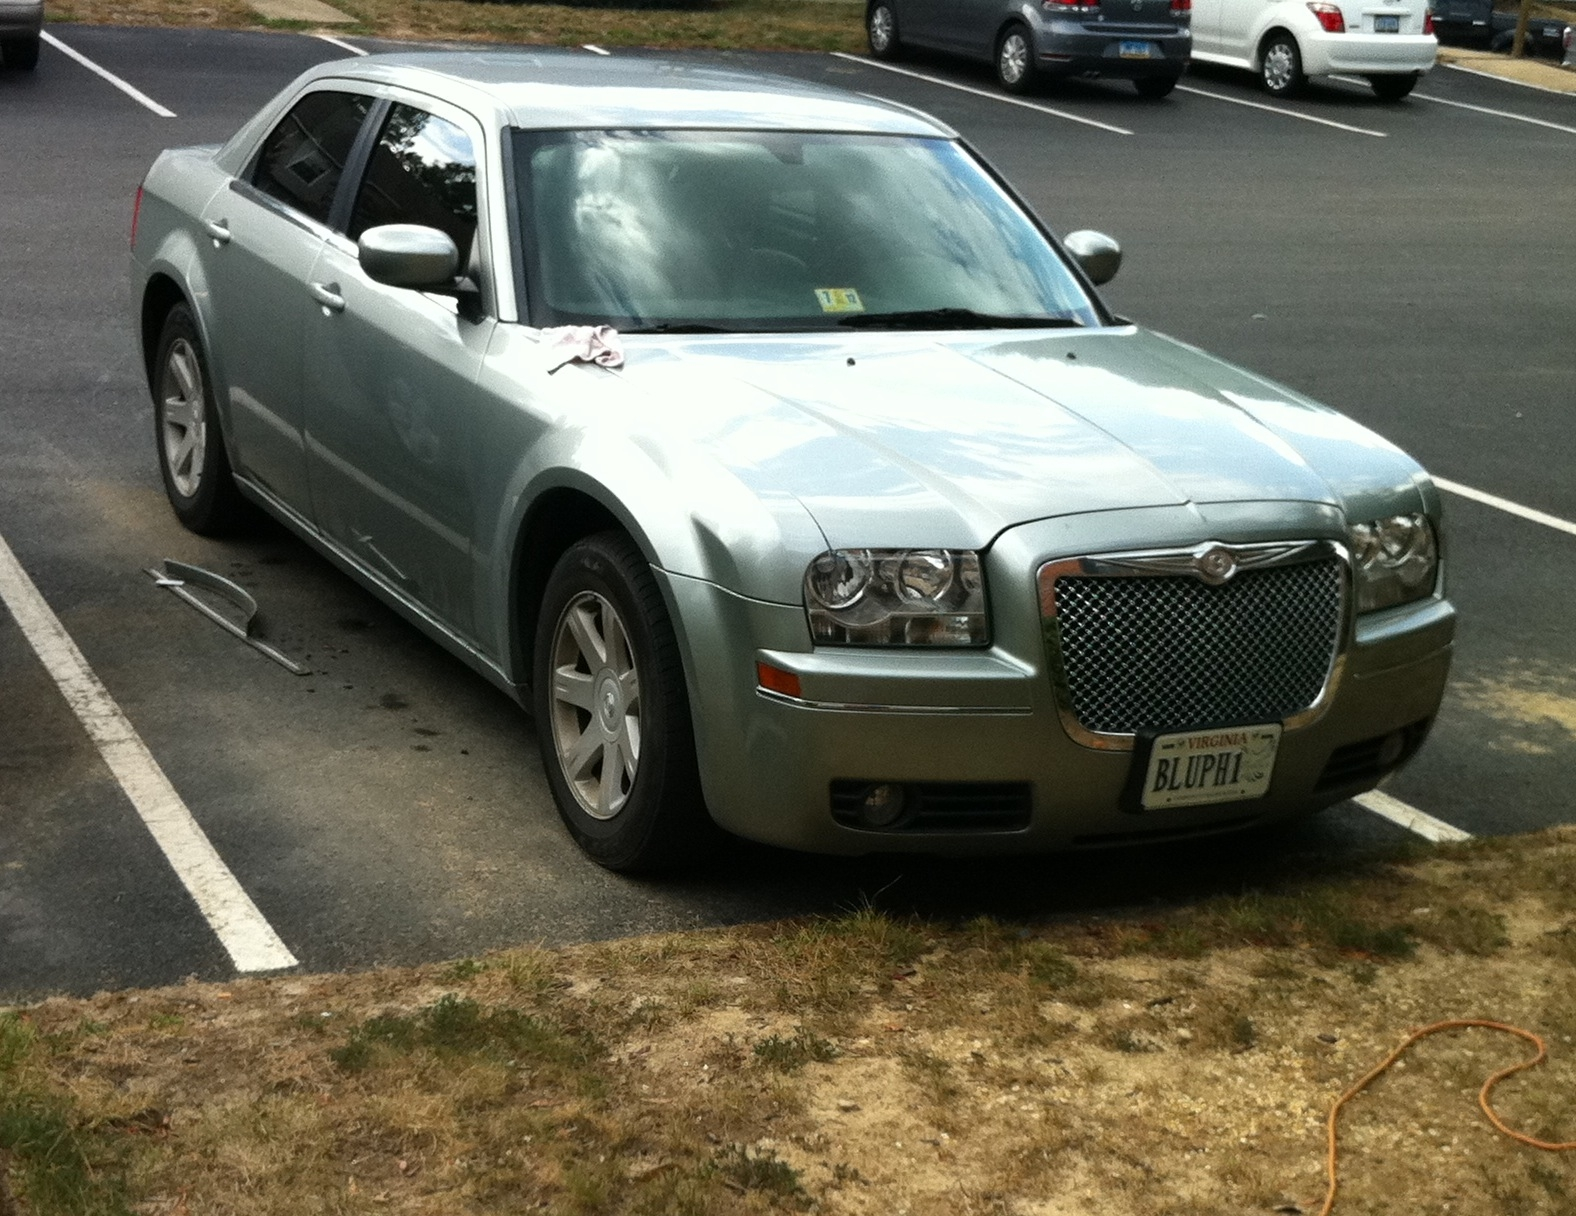 Another soldier1914 2005 Chrysler 300 post... - 12048745